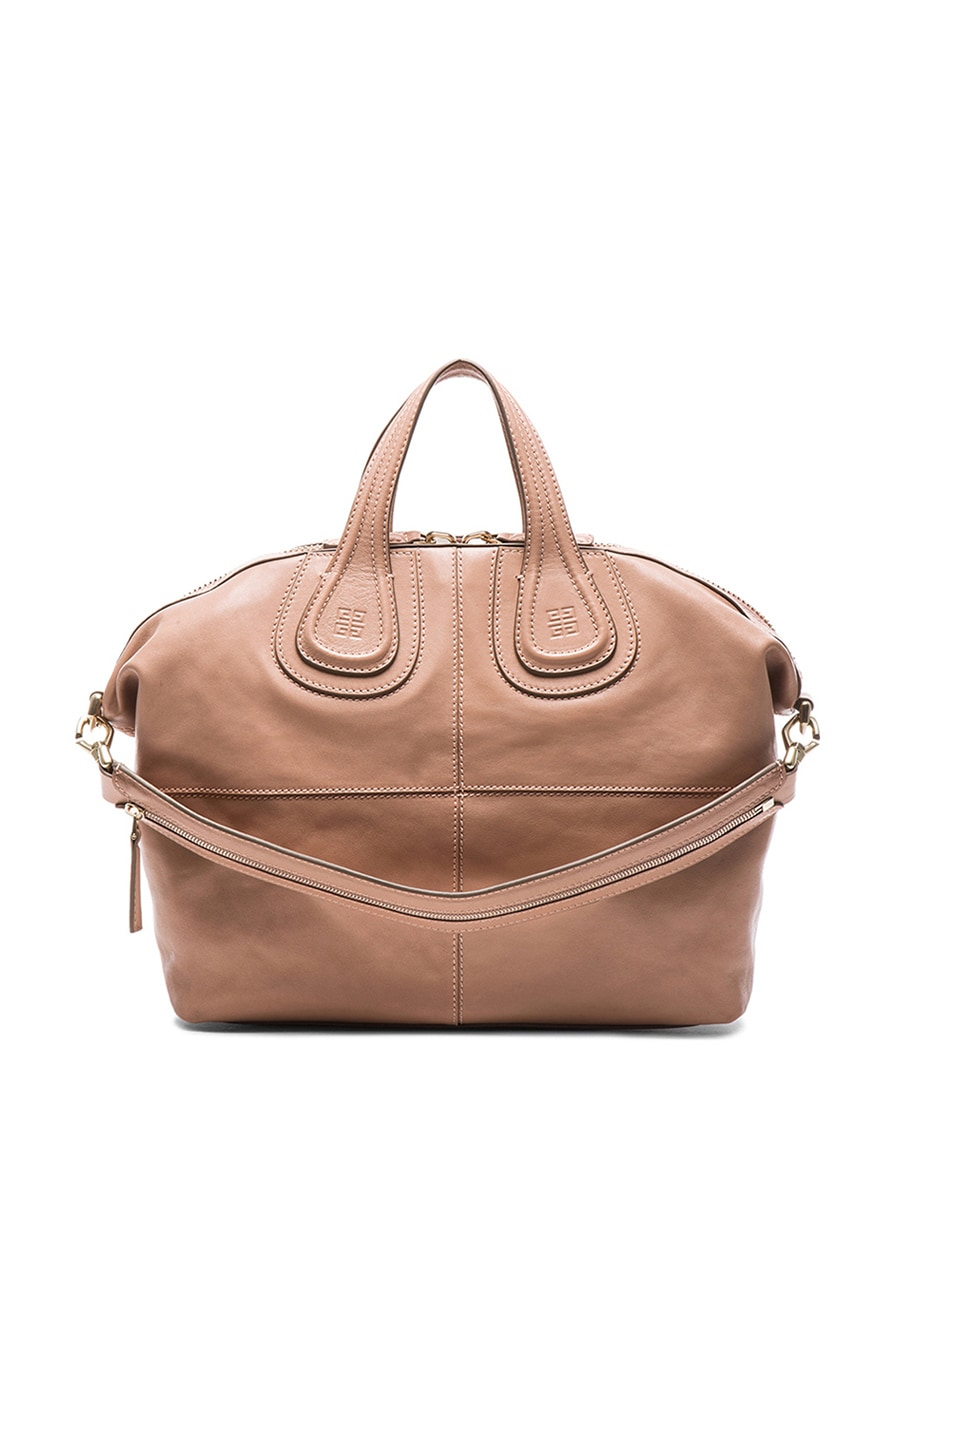 Image 1 of GIVENCHY Medium Nightingale in Pale Pink